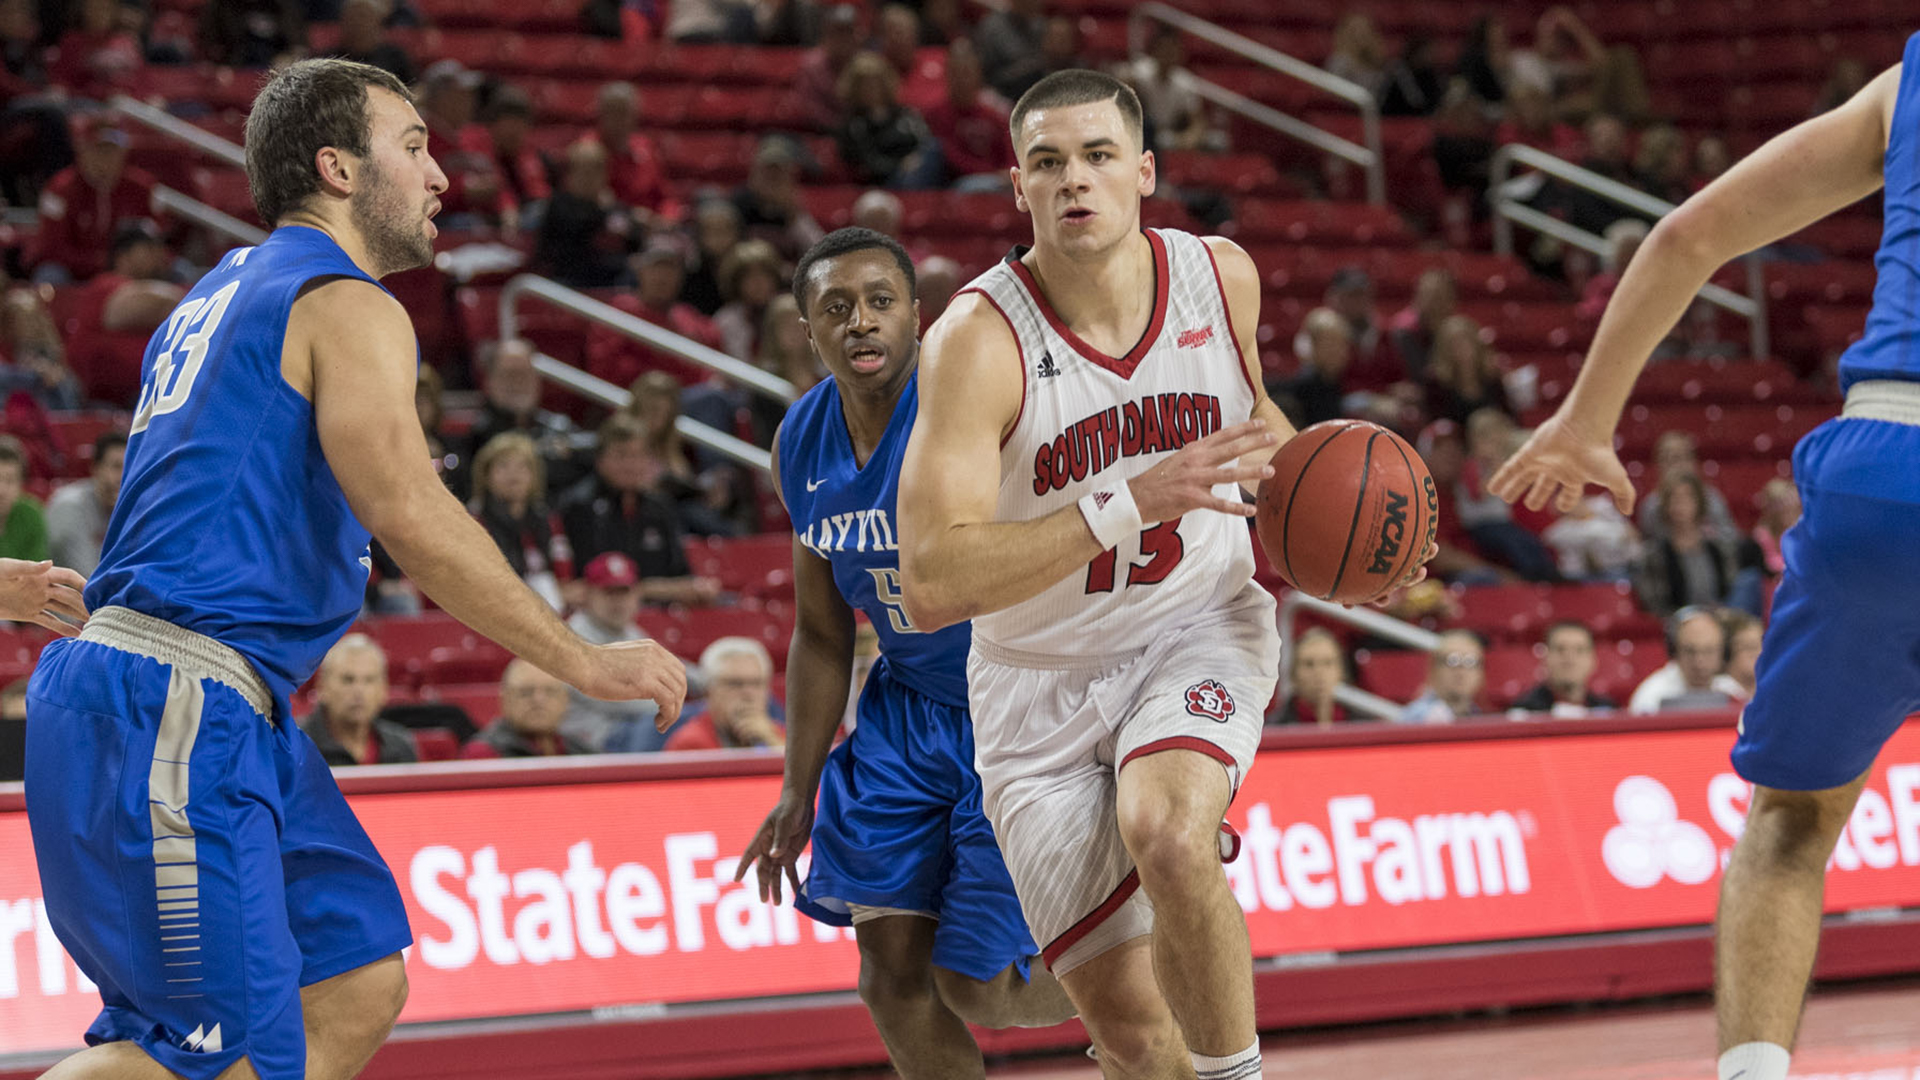 Balanced Attack Leads Coyotes To Victory University Of South